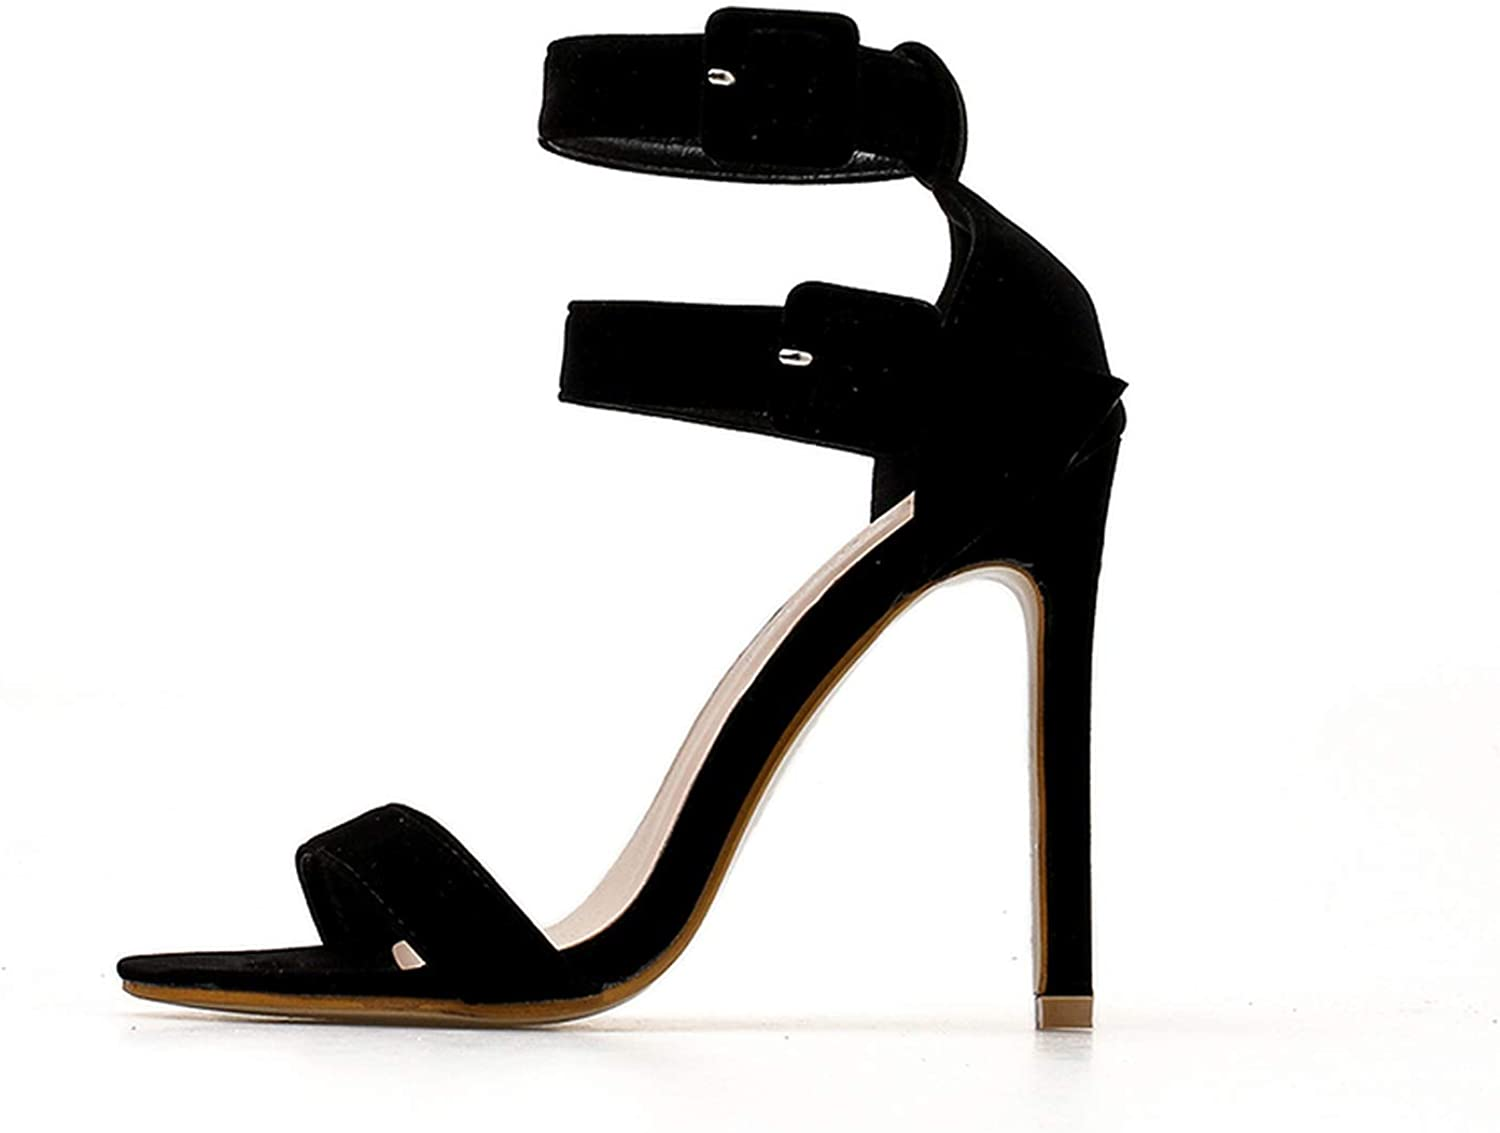 New Rome Style Belt Buckle Thin Heel High Heel Sandals for Women Sexy Lady Black shoes